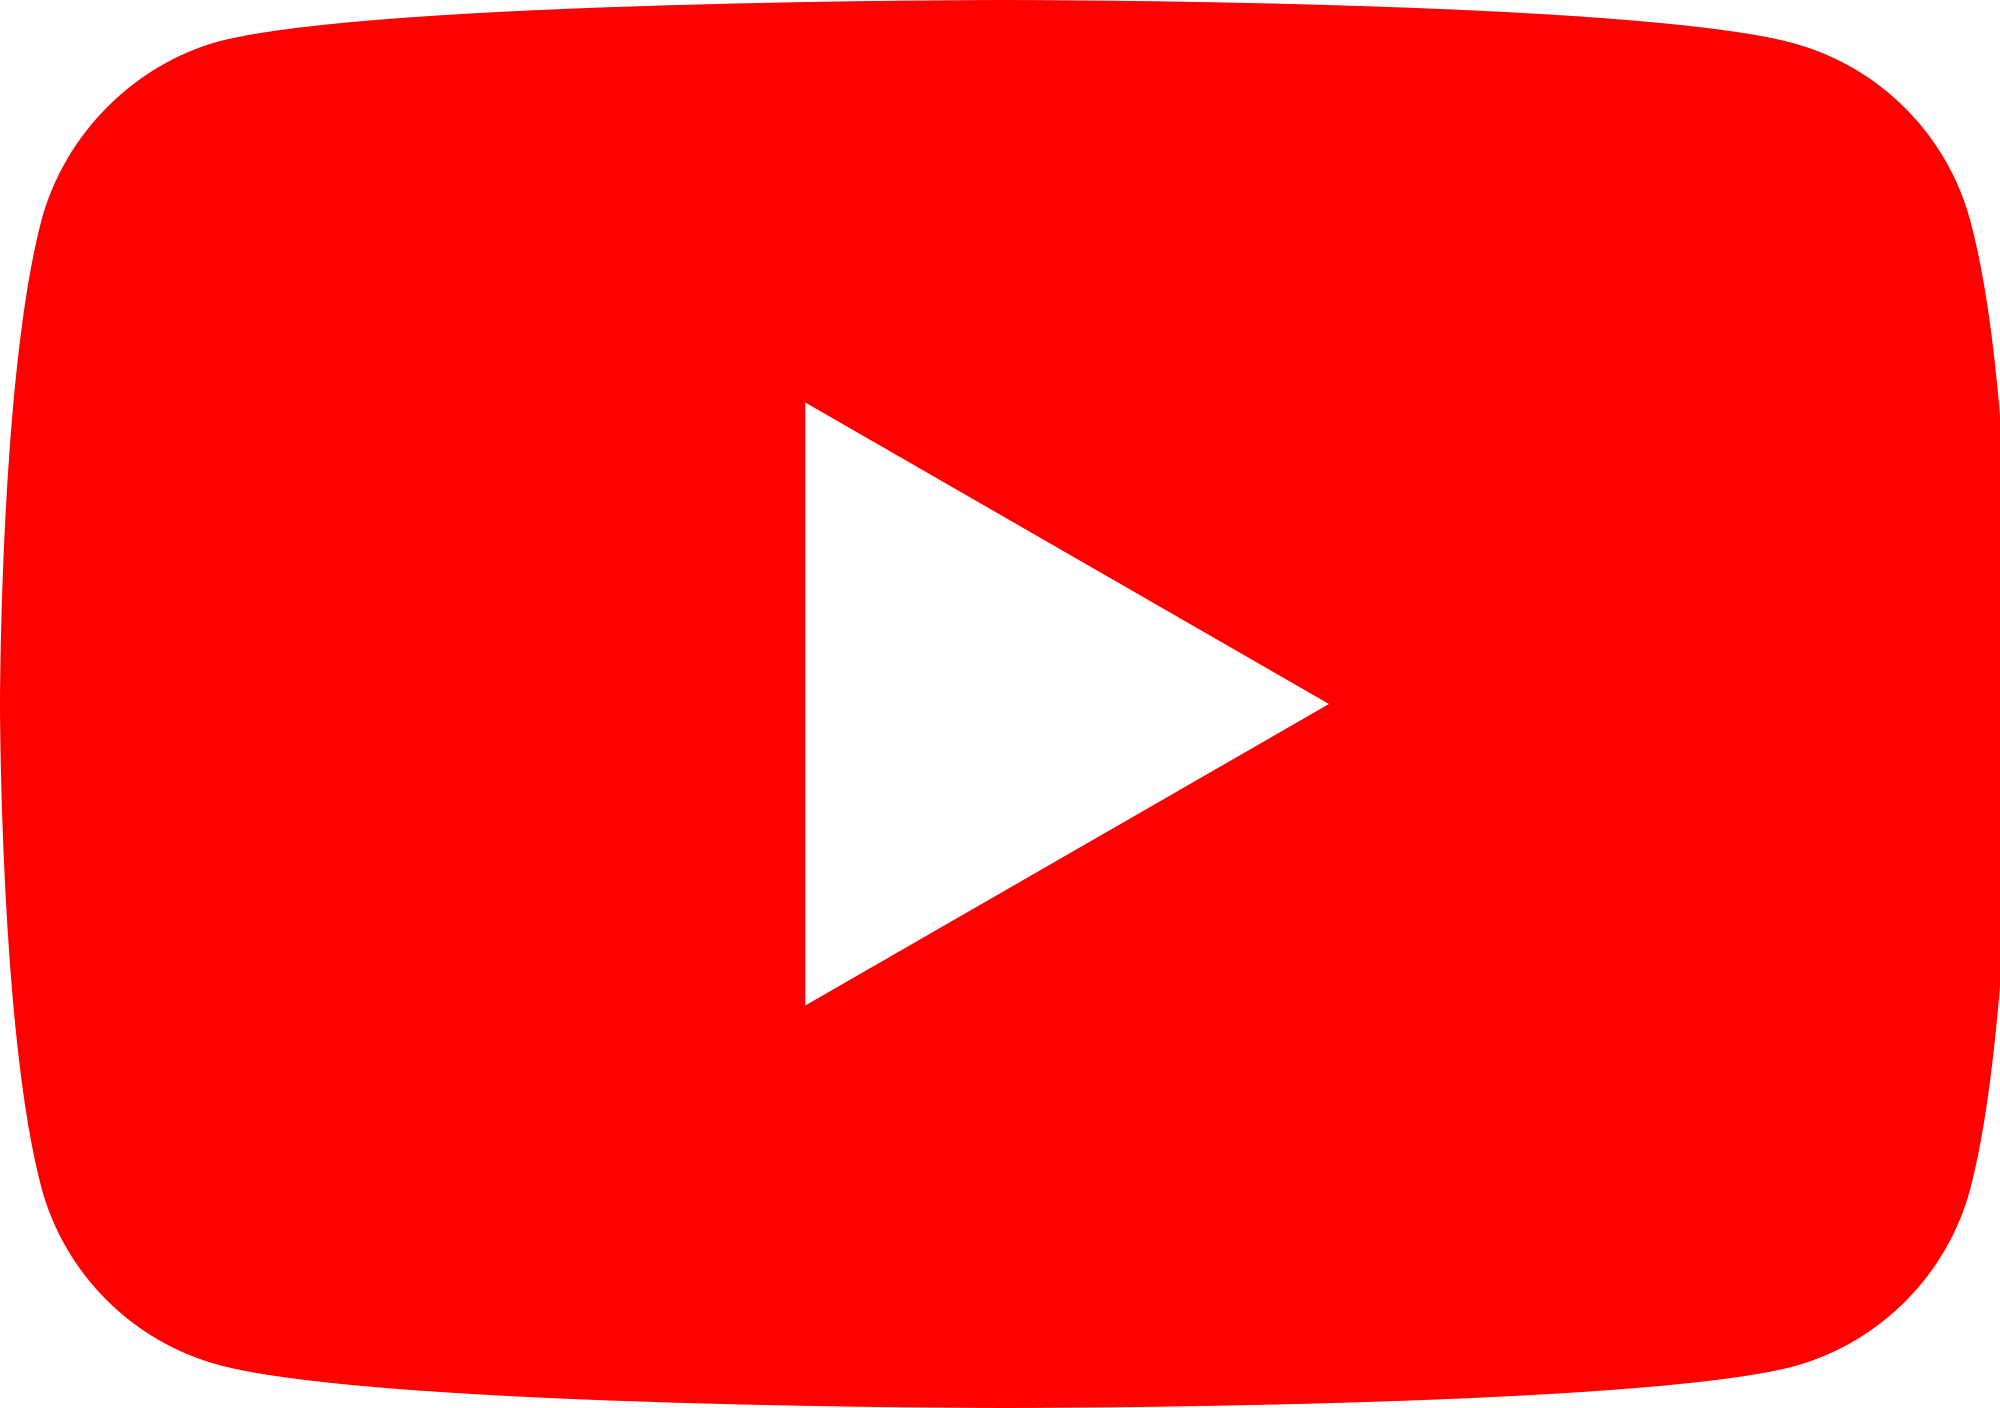 Red color png. File youtube full icon